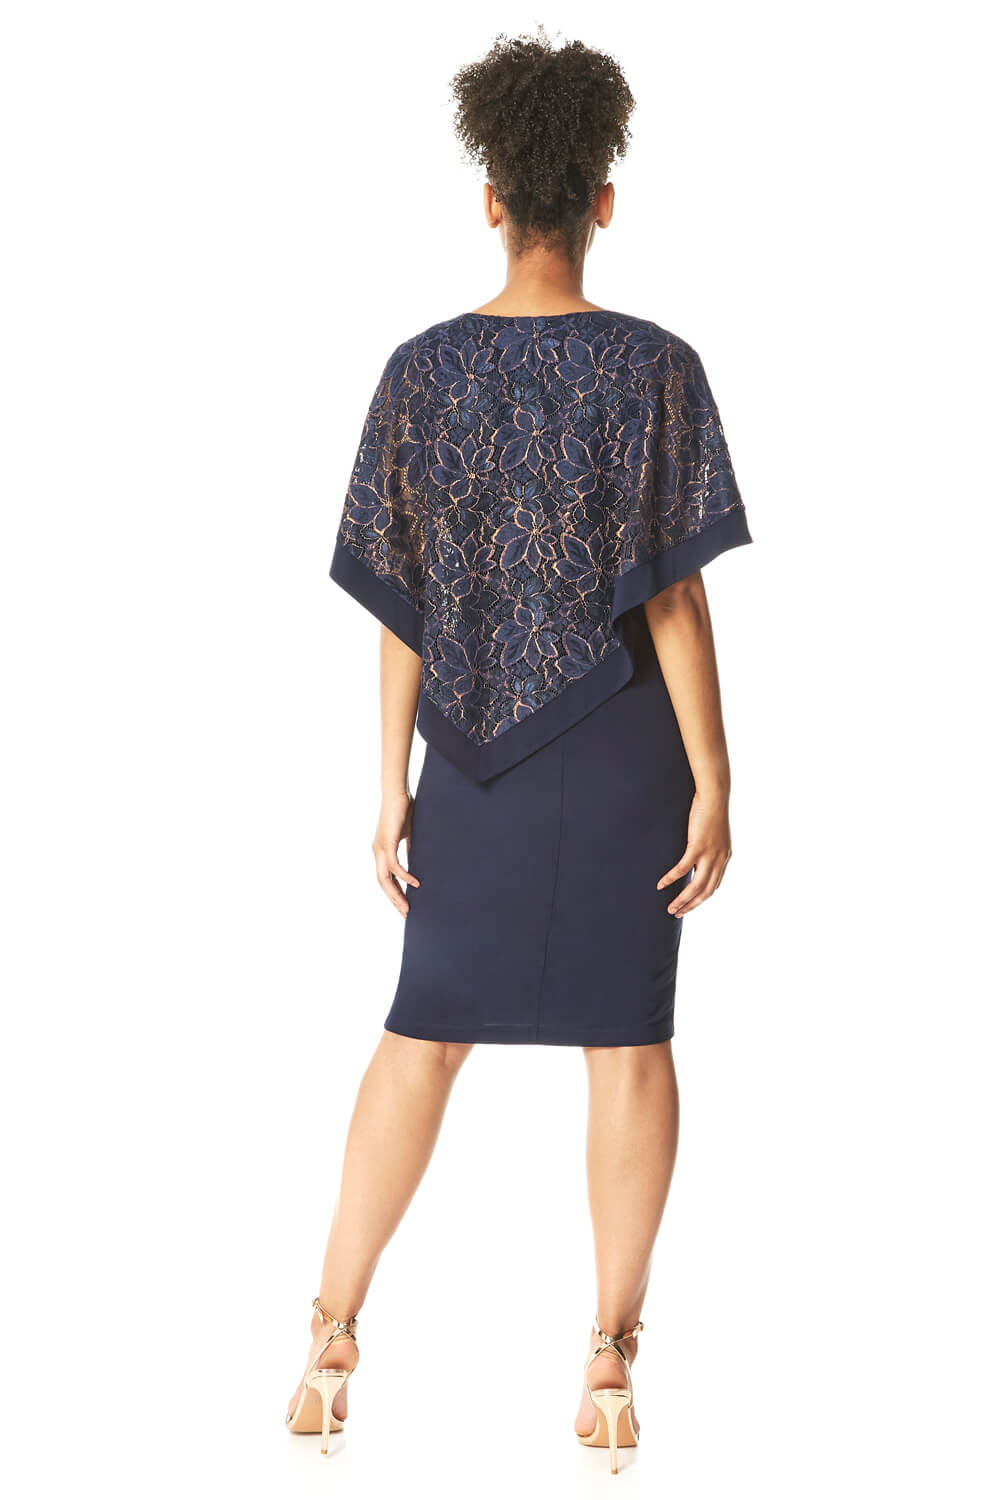 Roman-Originals-Women-039-s-Sequin-Lace-Boat-Neck-Overlay-Knee-Length-Dress thumbnail 29